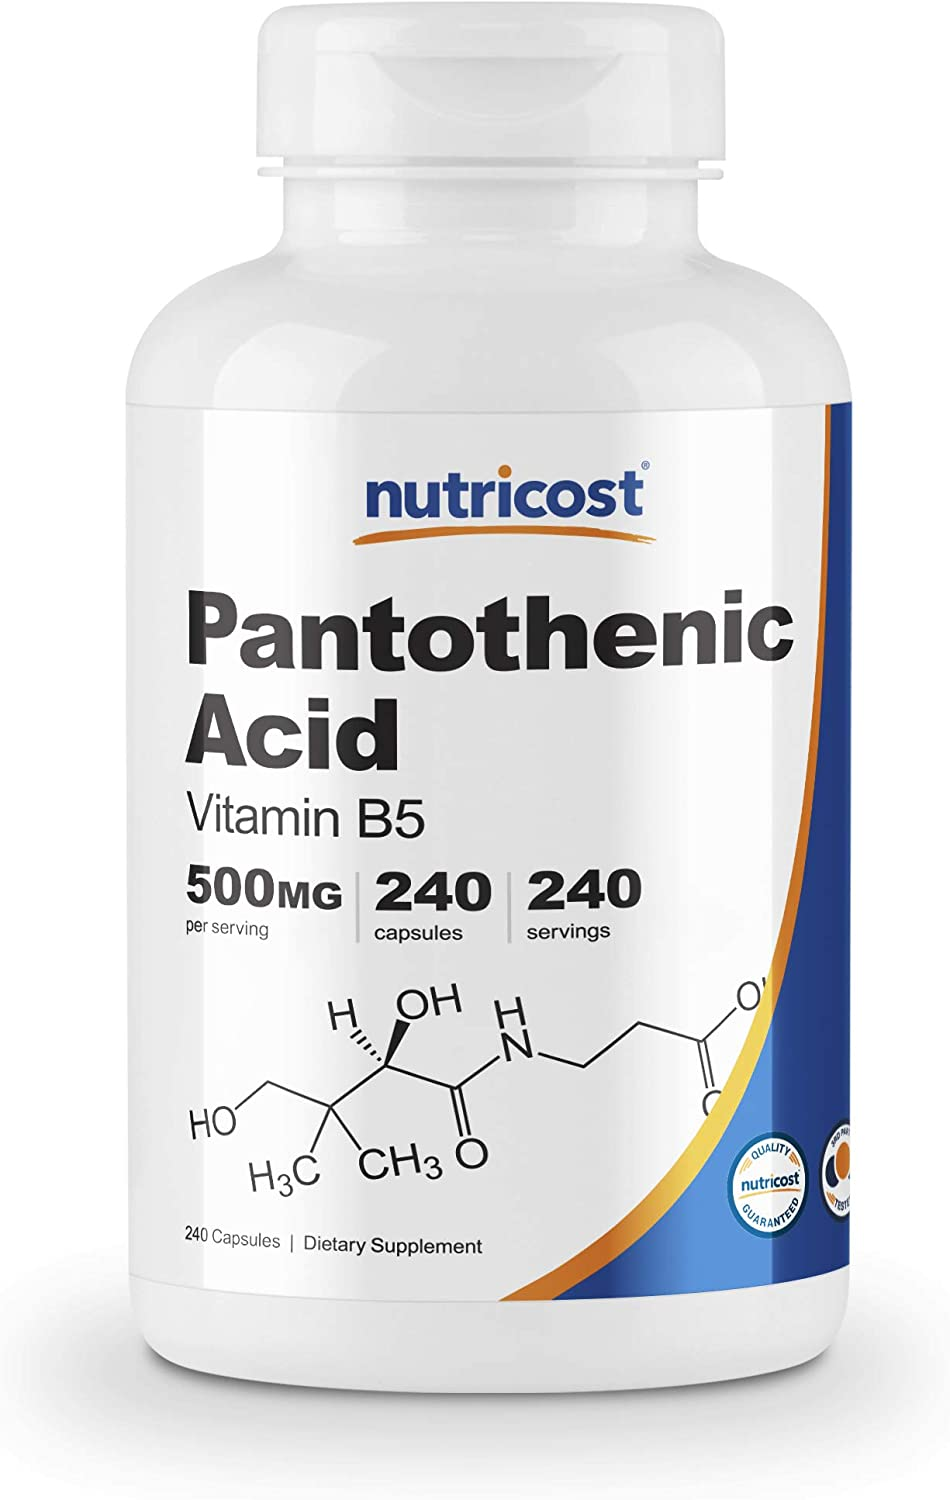 Nutricost Pantothenic Acid (Vitamin B5) 500mg - 240 Tablet